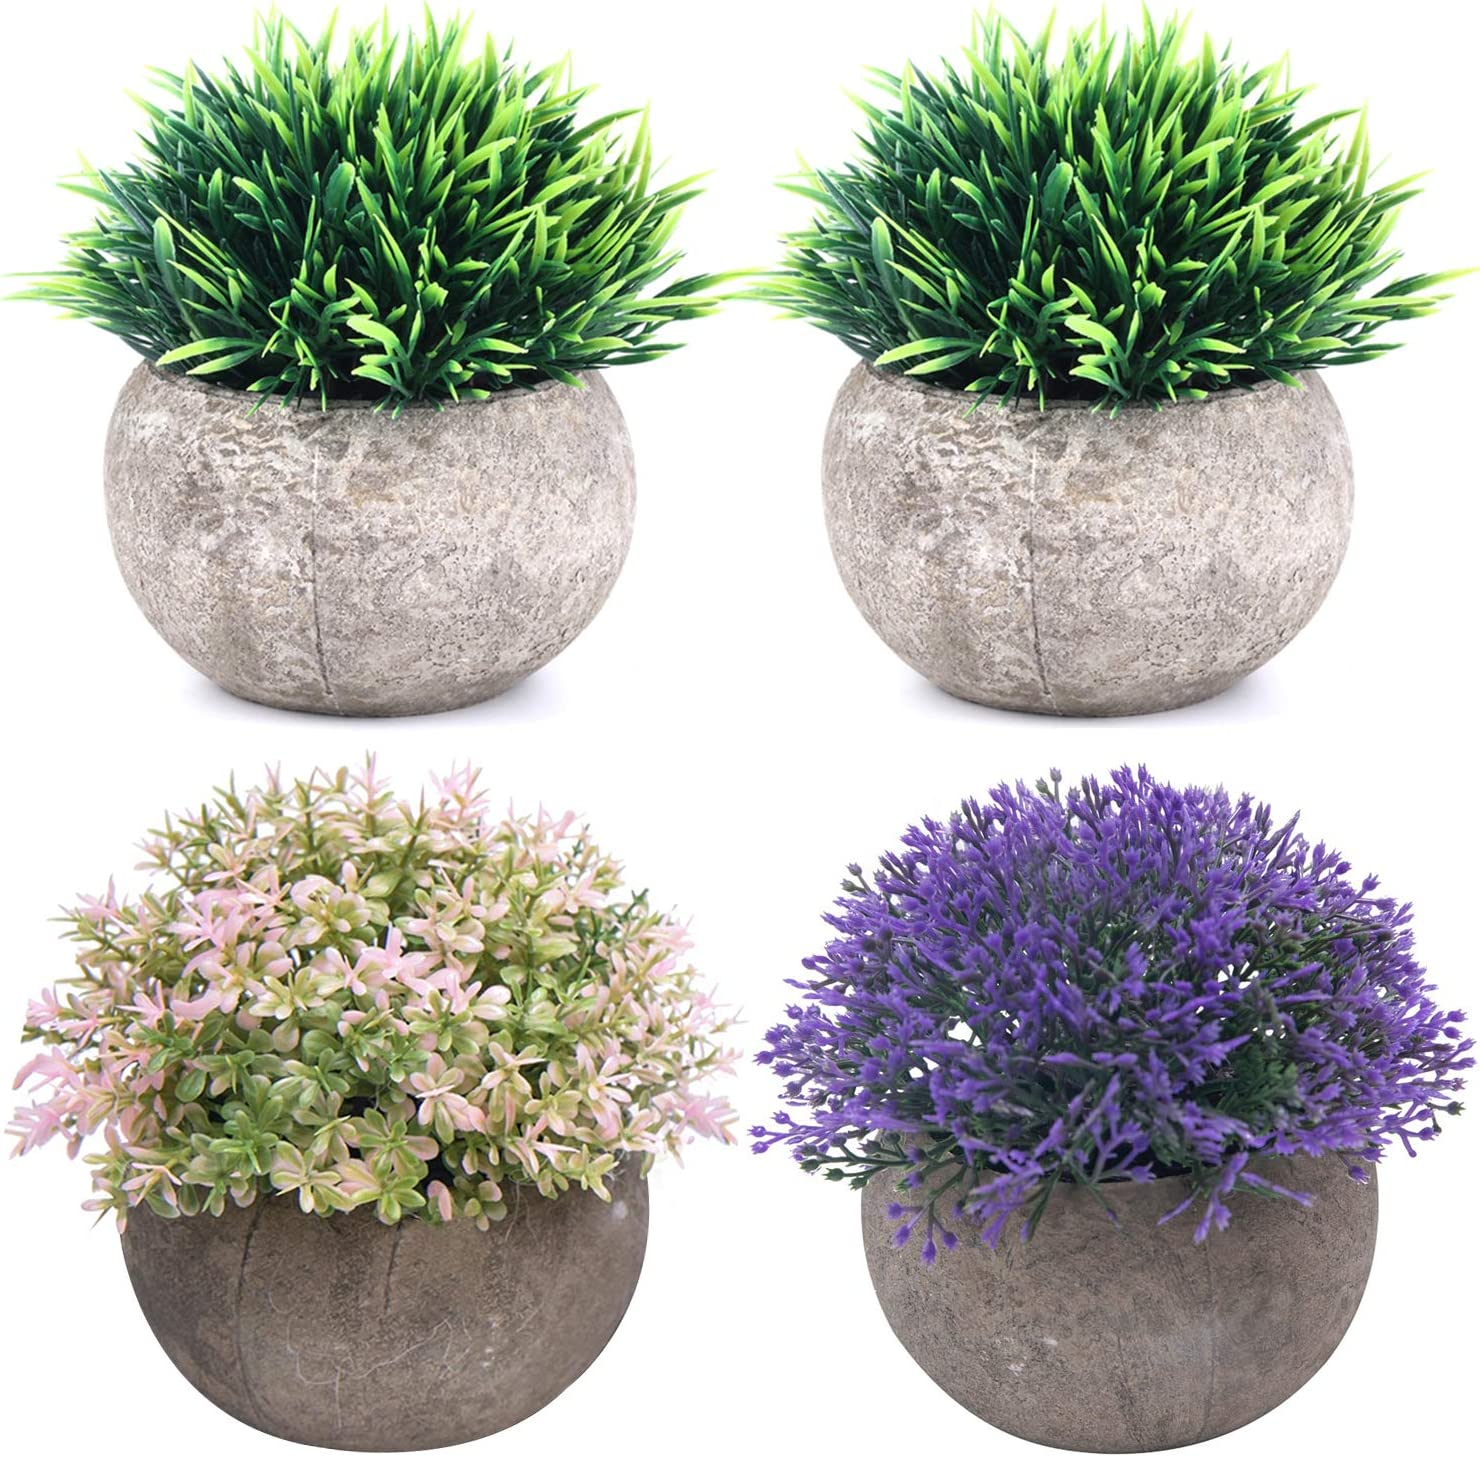 THE BLOOM TIMES 4 Pcs Small Fake Plants for Bathroom/Home Office Decor, Artificial Plants Faux Greenery for House Decorations (Potted Plants)